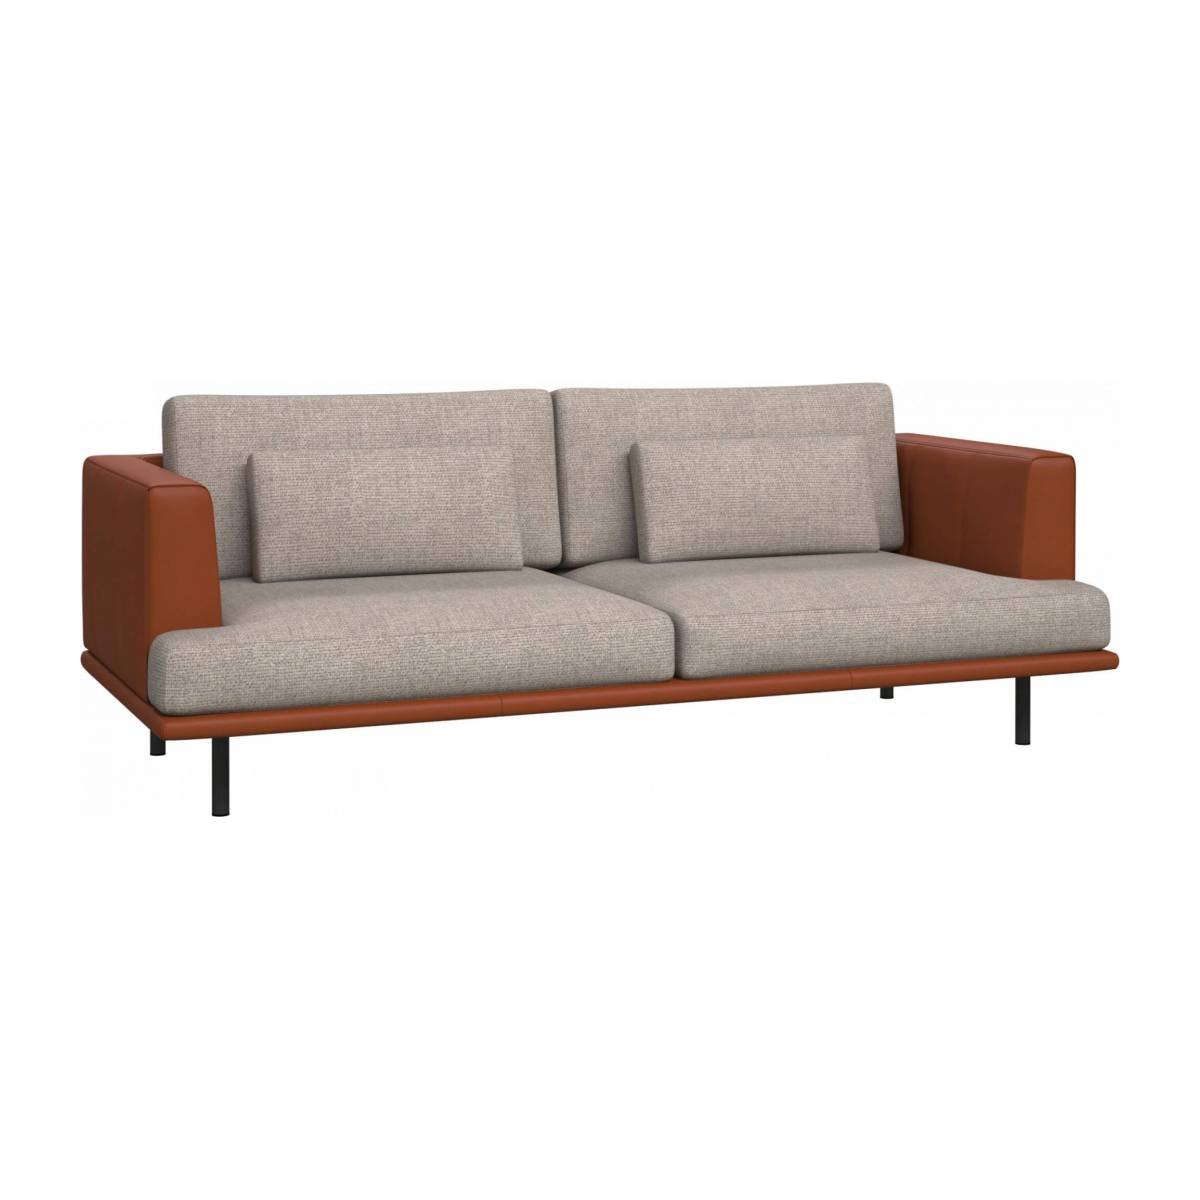 3 seater sofa in Lecce fabric, nature with base and armrests in brown leather n°3